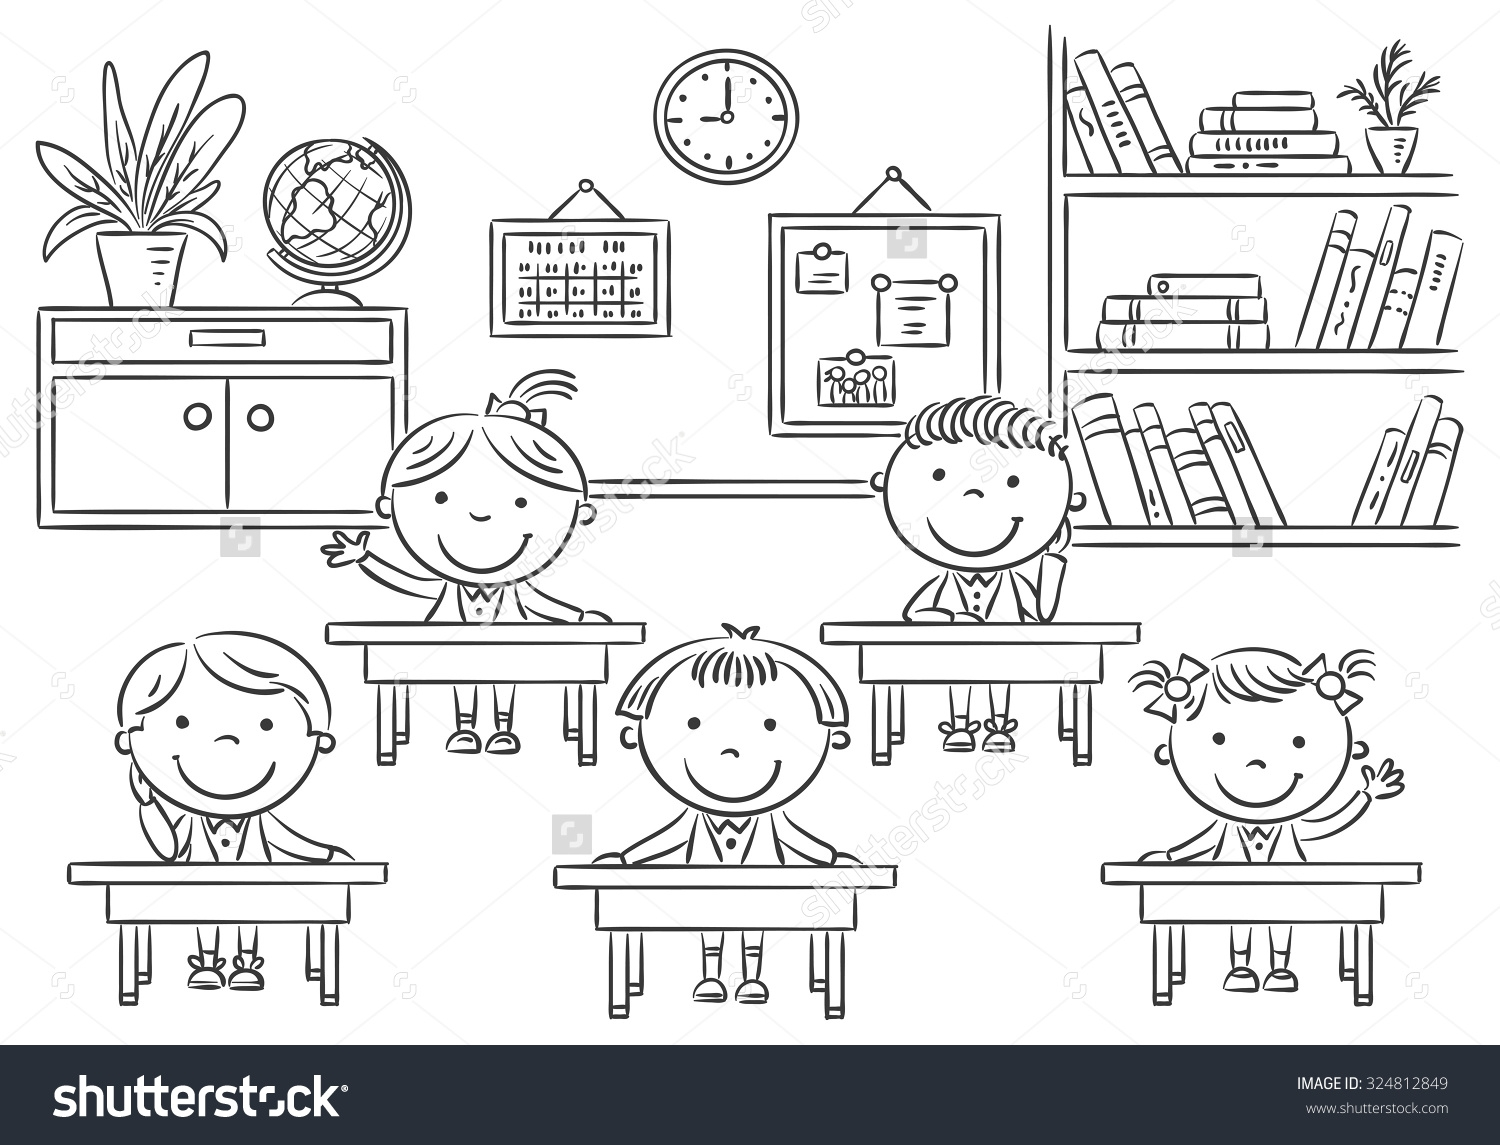 Vector Drawing Lines Kindergarten : School room clipart black and white clipground